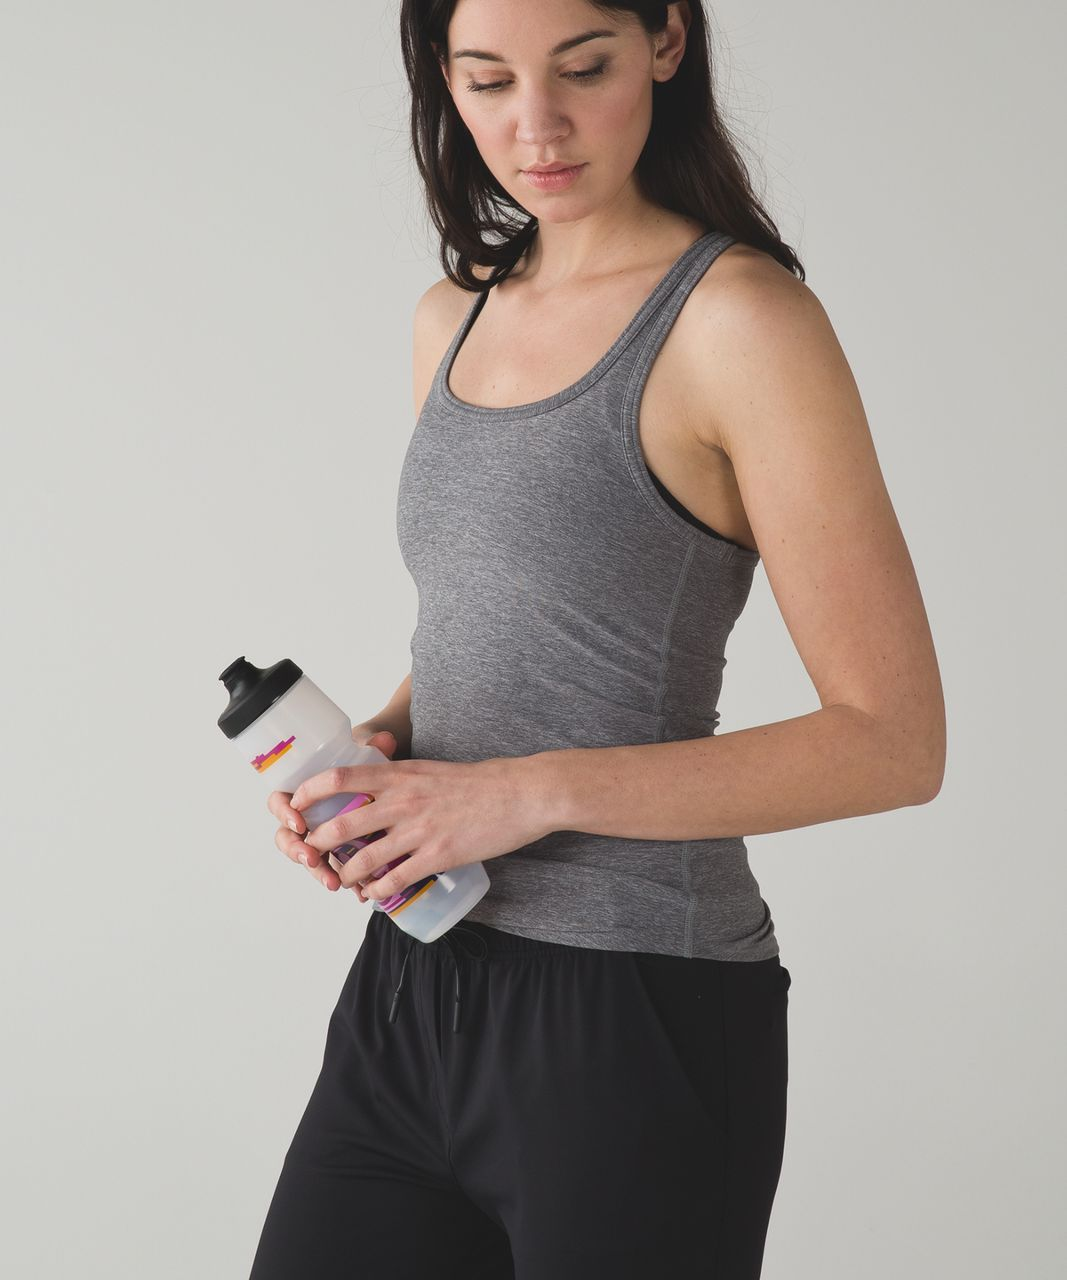 Lululemon Purist Cycling Water Bottle *26 oz - Pigment Wave Berry Rumble Multi / Clear